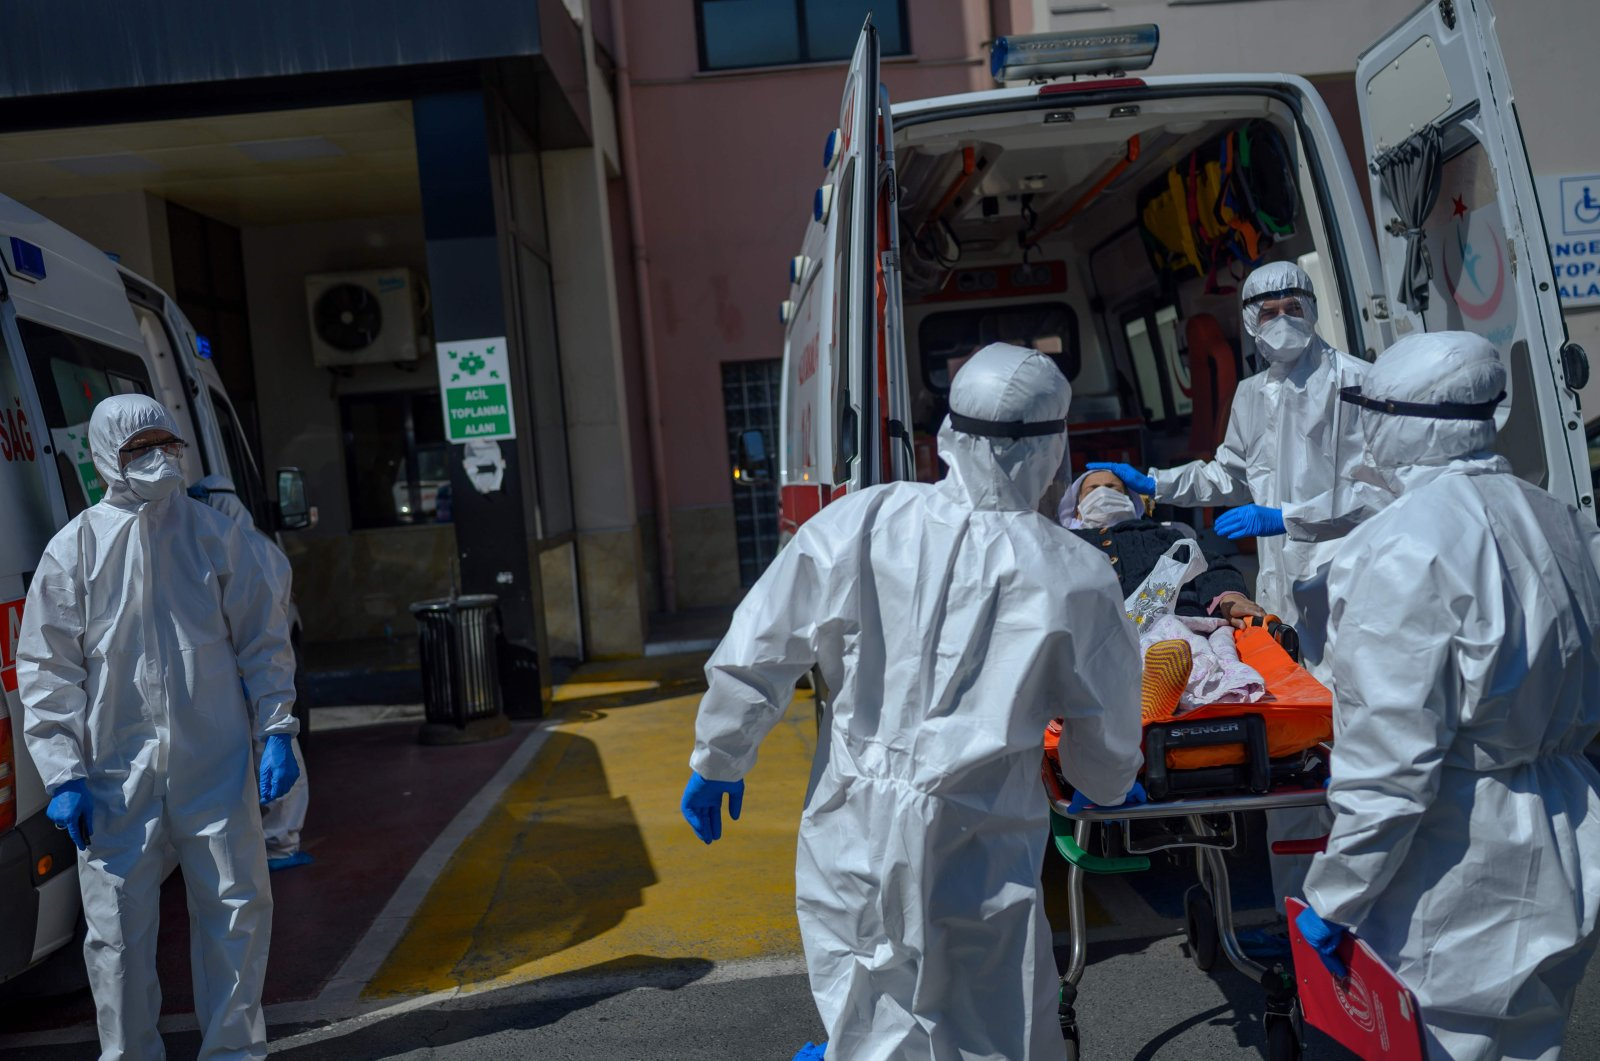 Health workers transport a patient suspected of being infected by the coronavirus in front of Bağcılar public hospital in Istanbul, Turkey, April 28, 2020. (AFP Photo)